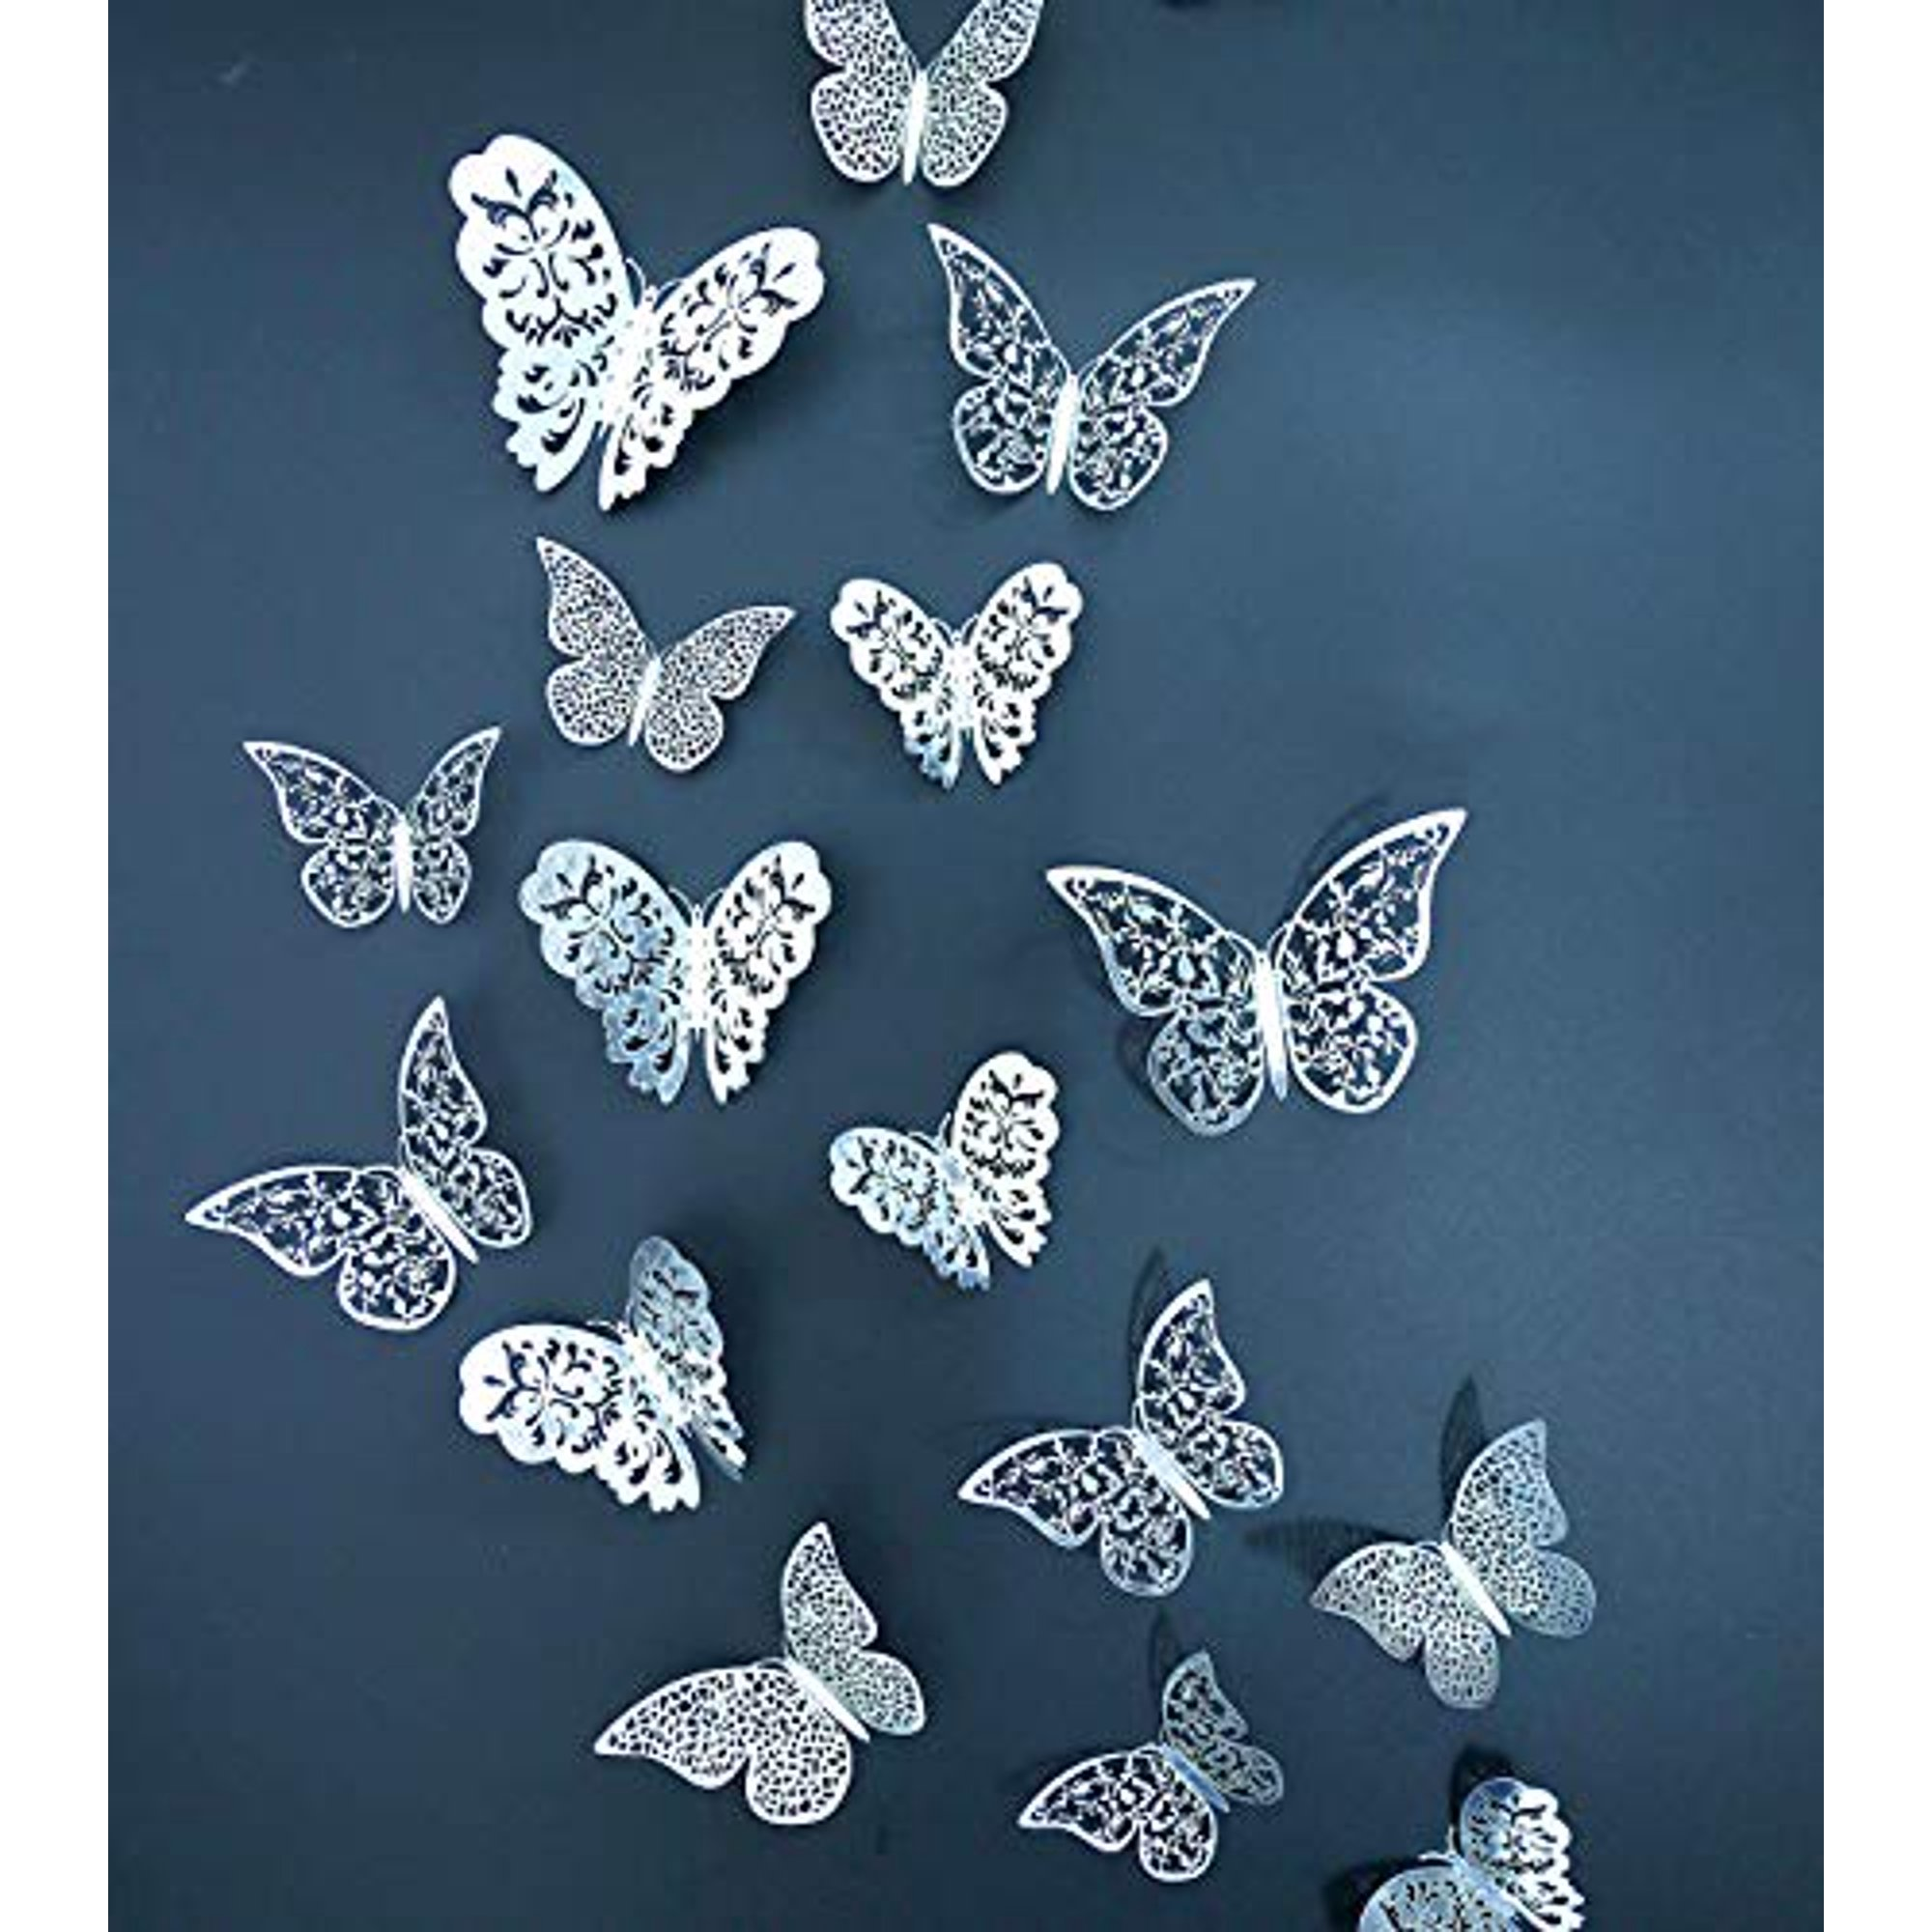 Eoorau 36pcs Silver Butterfly Wall Decals 3d Butterflies Wall Stickers Removable Mural Decor Wall Stickers Decals Wall Decor Home Decor Kids Room Bedroom Decor Living Room Decor Walmart Canada